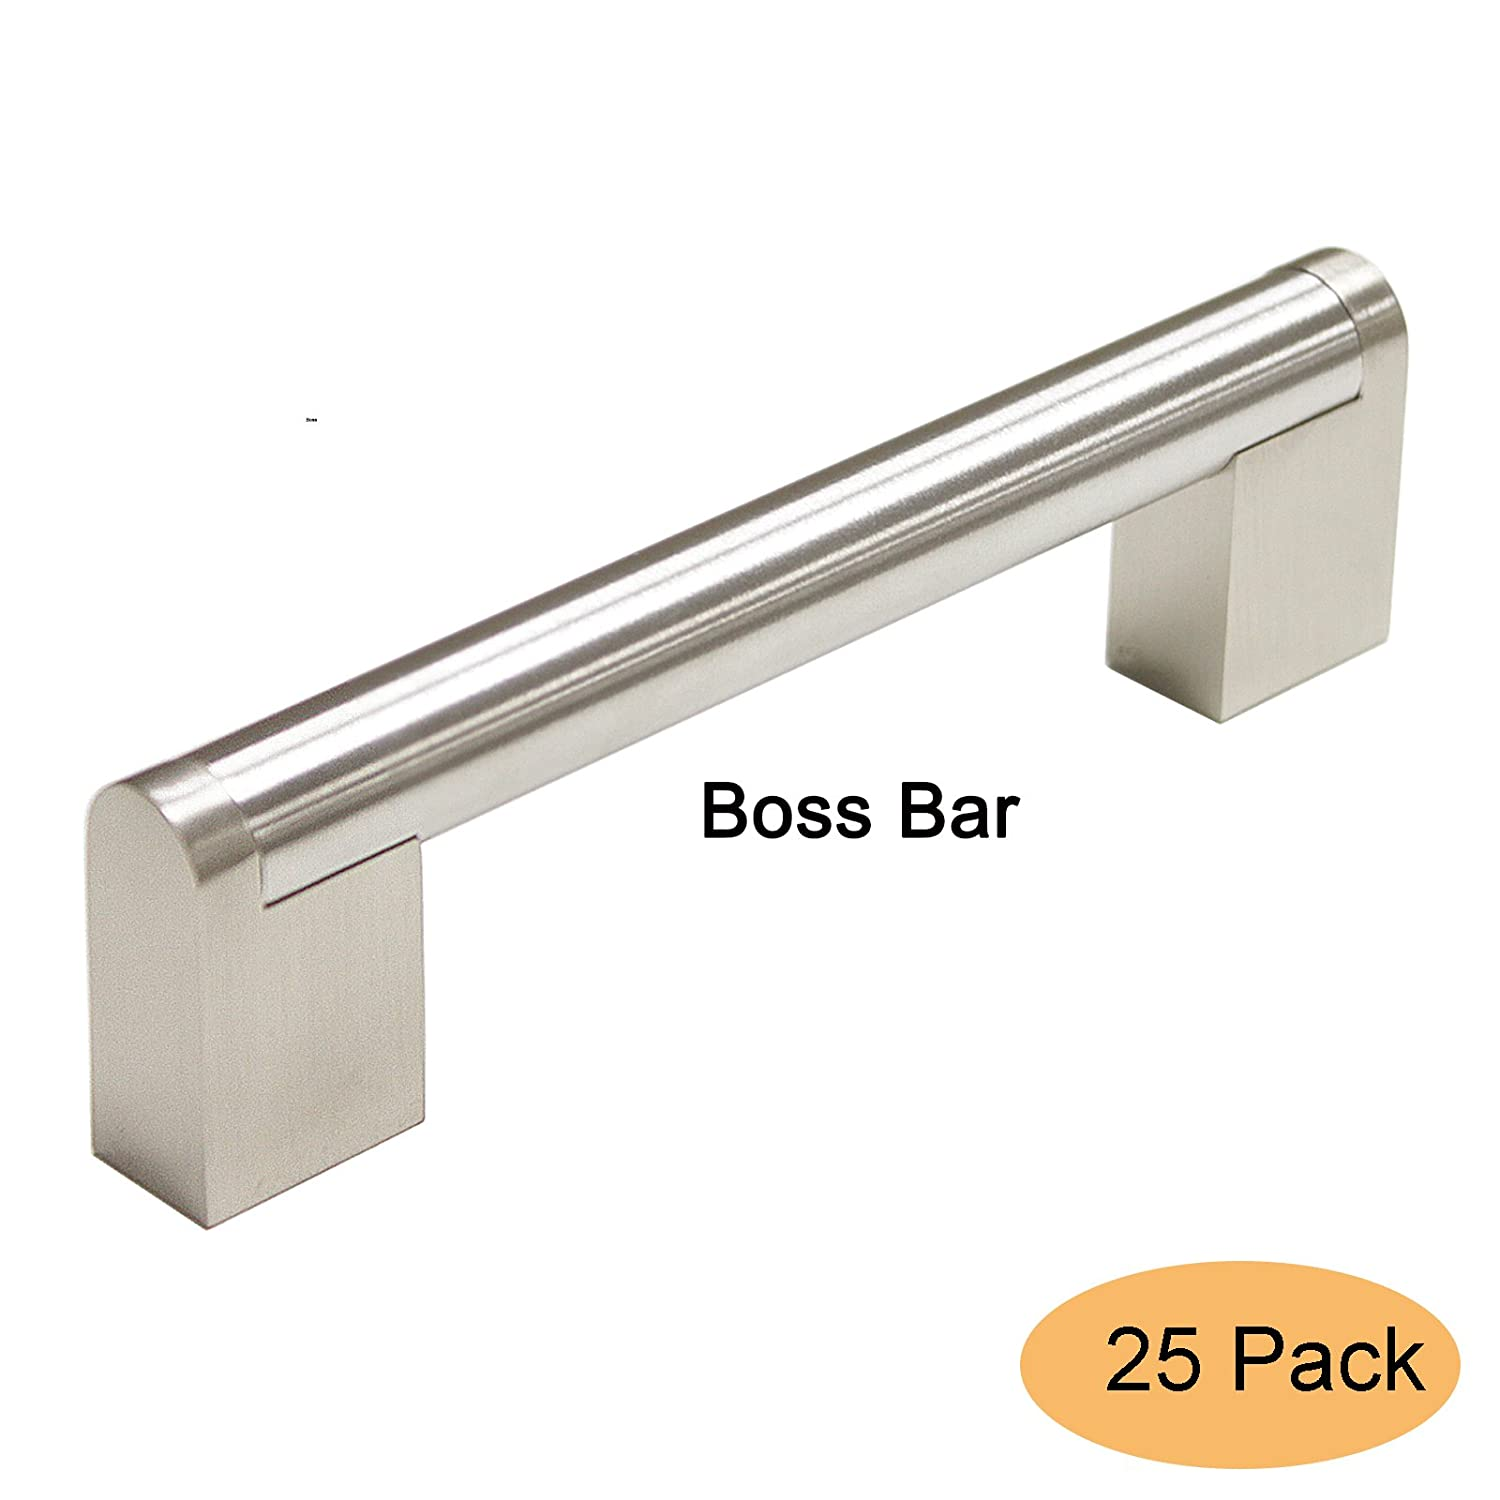 Hole Centers Euro Style T Bar Drawer Cabinet Hardware Kitchen Handle Pull 96mm Gobrico Satin Nickel 3-3//4 6 Overall Length-15Packs 6 Overall Length-15Packs